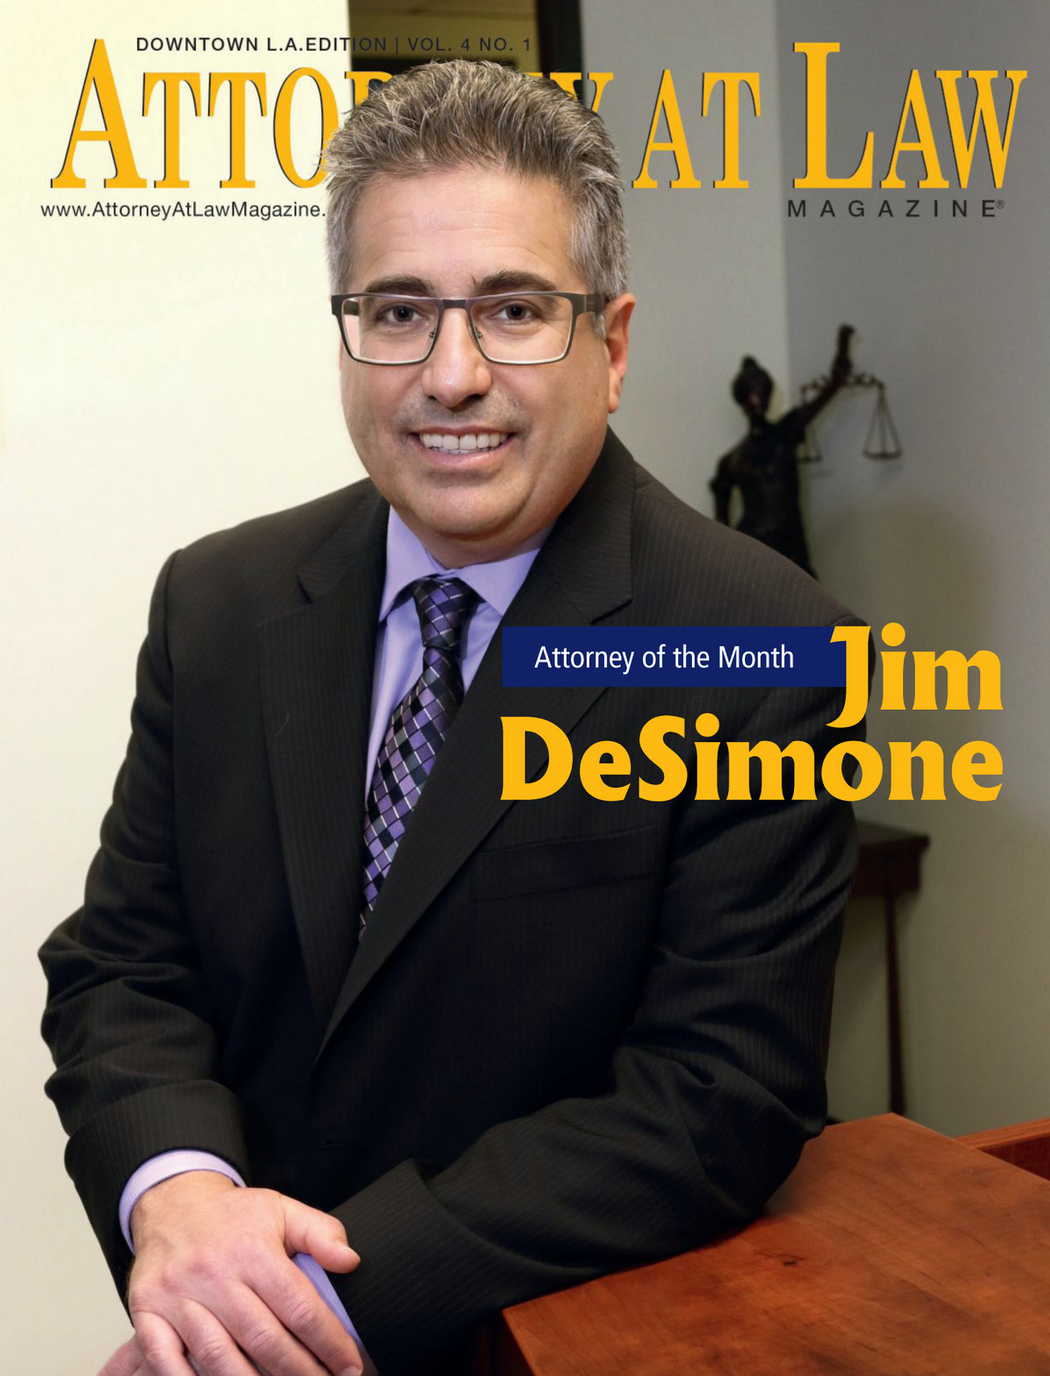 Attorney DeSimone Attorney at Law magazine